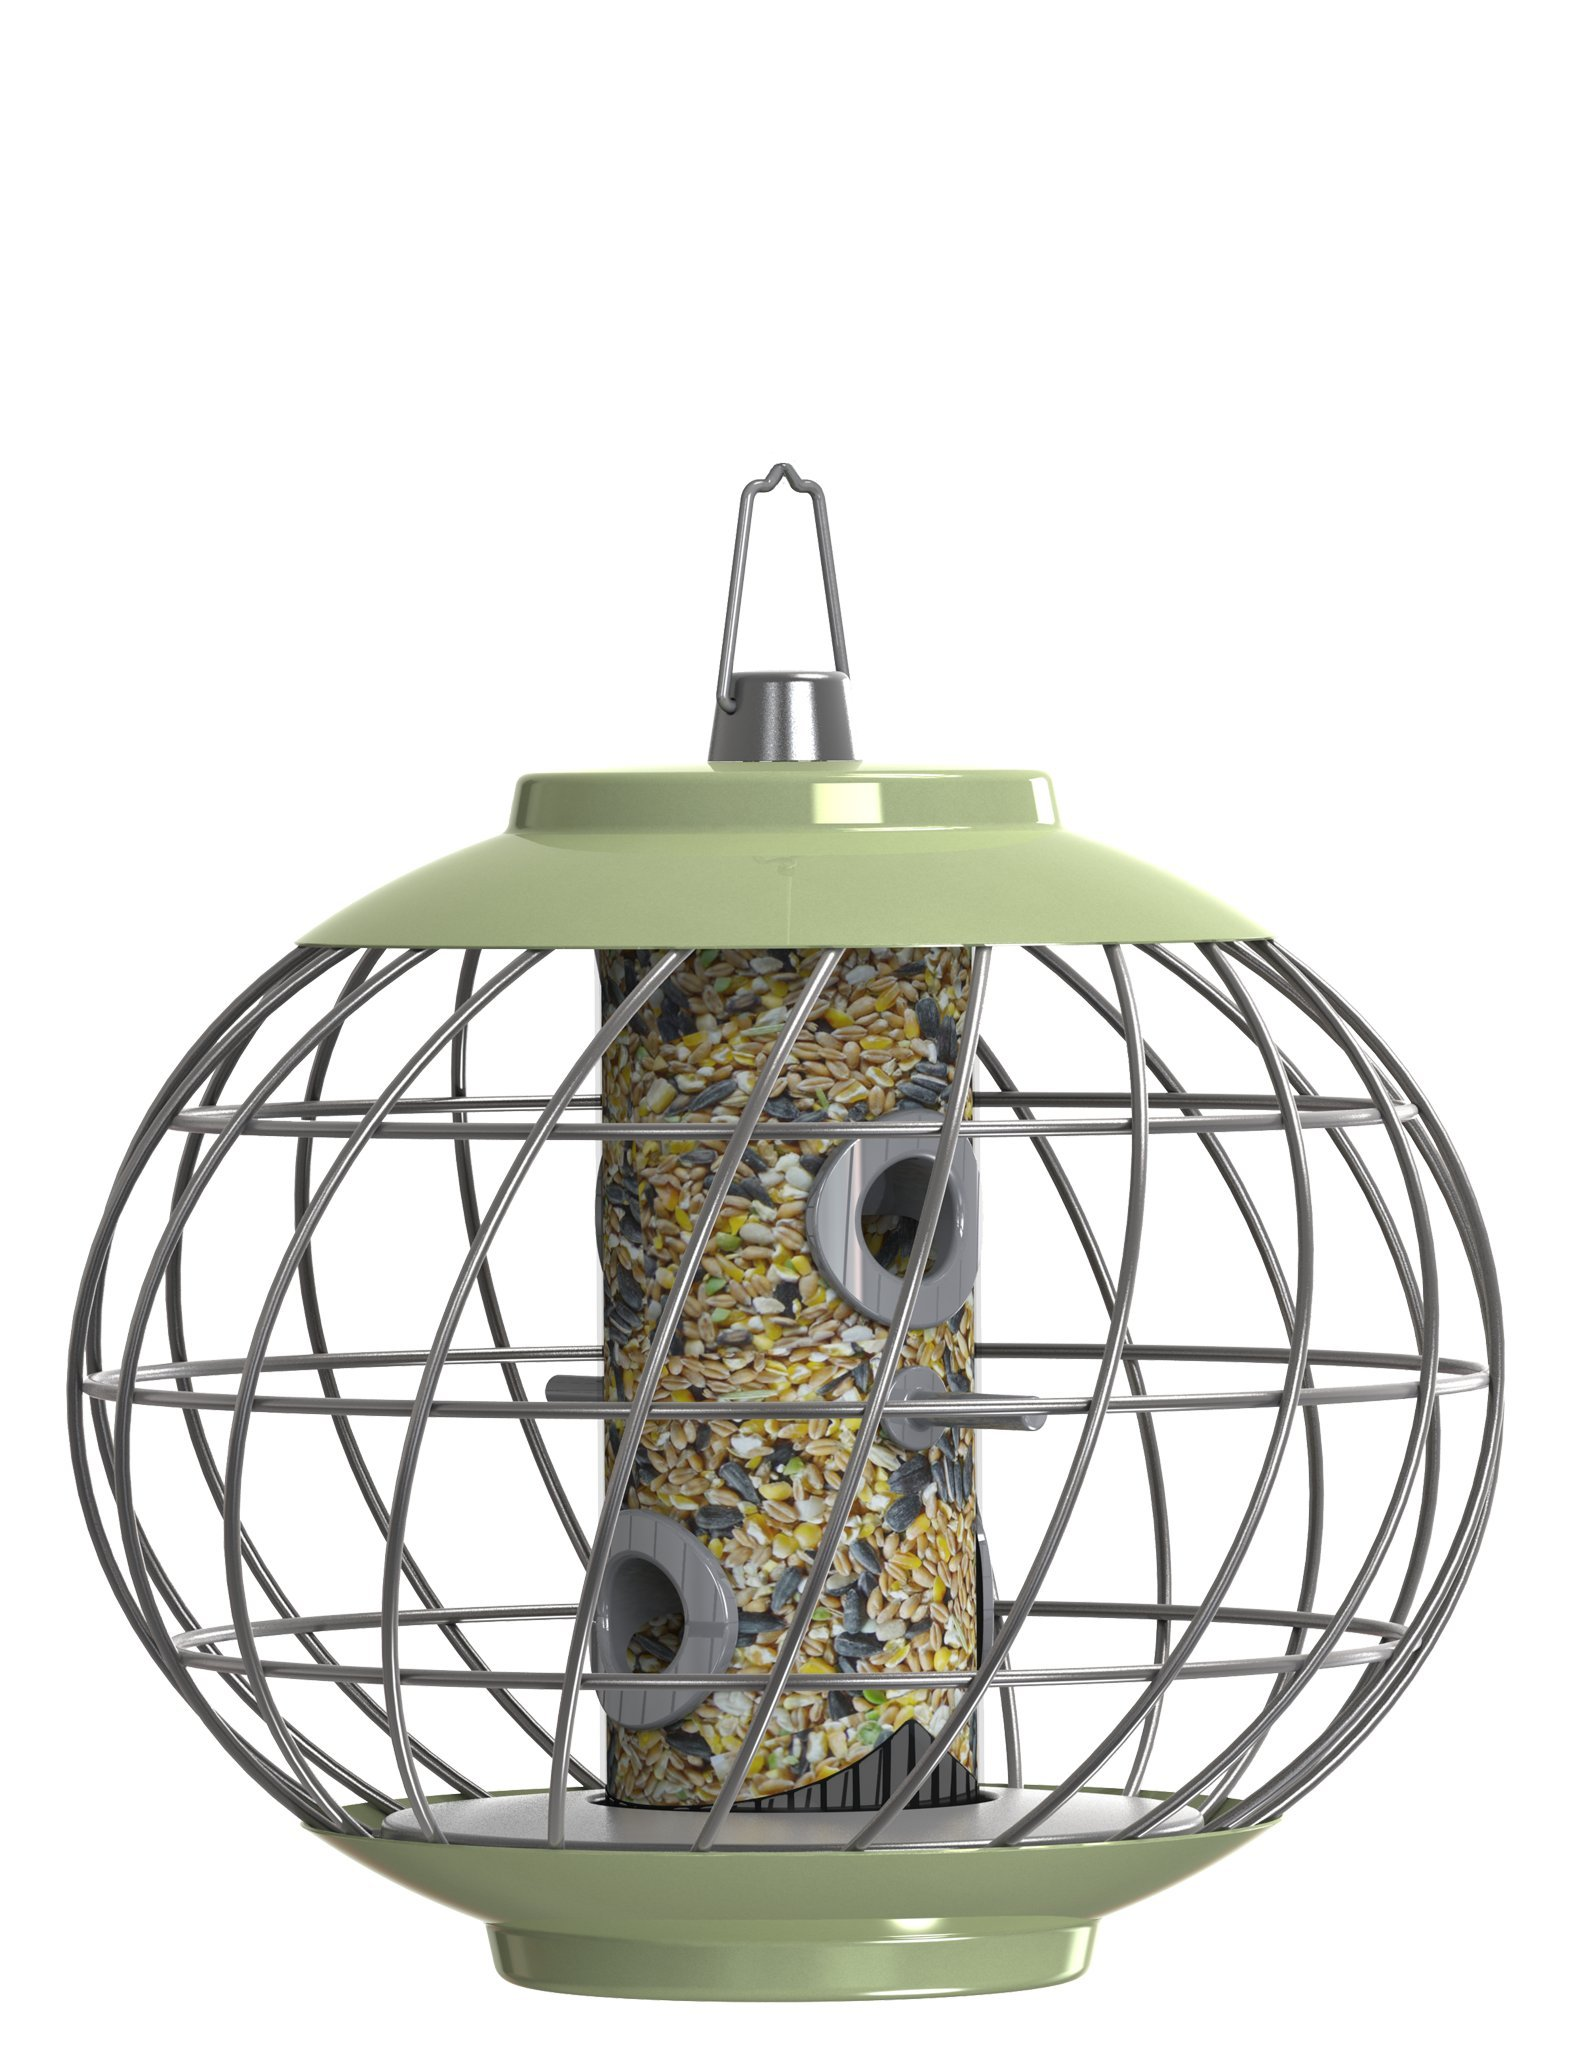 The Nuttery NC020 Helix Seed Feeder by The Nuttery